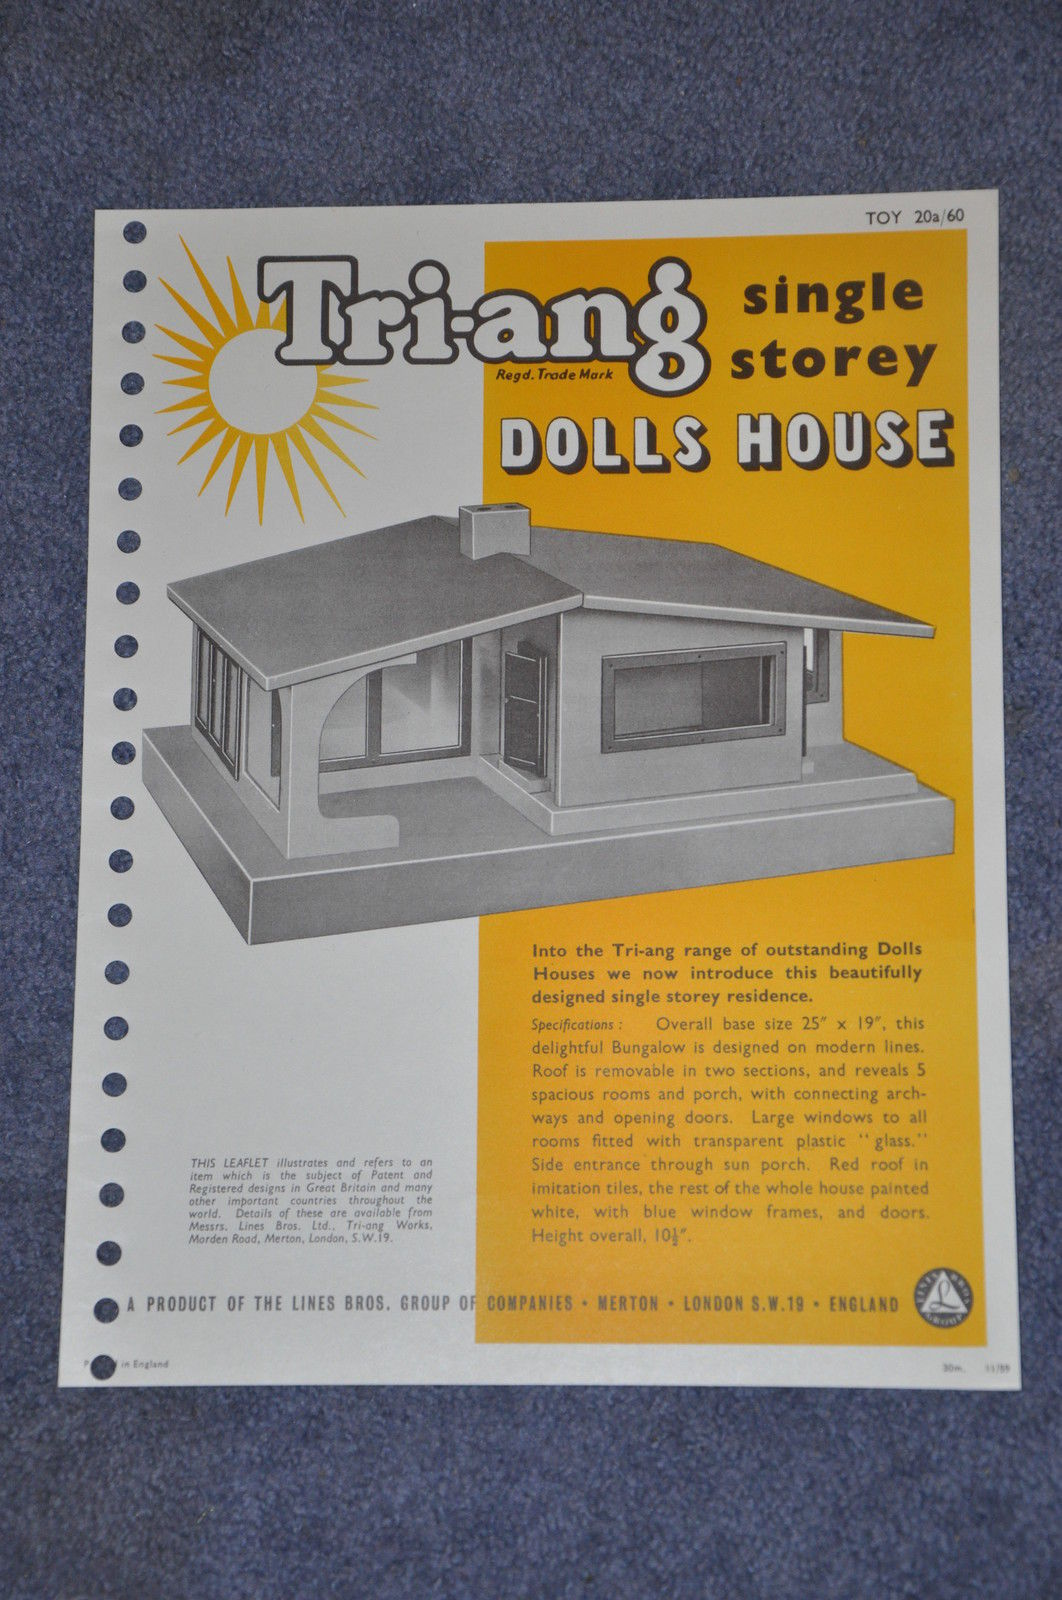 Bungalow (single storey dolls house) 1960. Dimensions: 25 inches [63.75 cm] wide, 19 inches [48.5 cm] deep and 10.5 inches [26 cm] high.